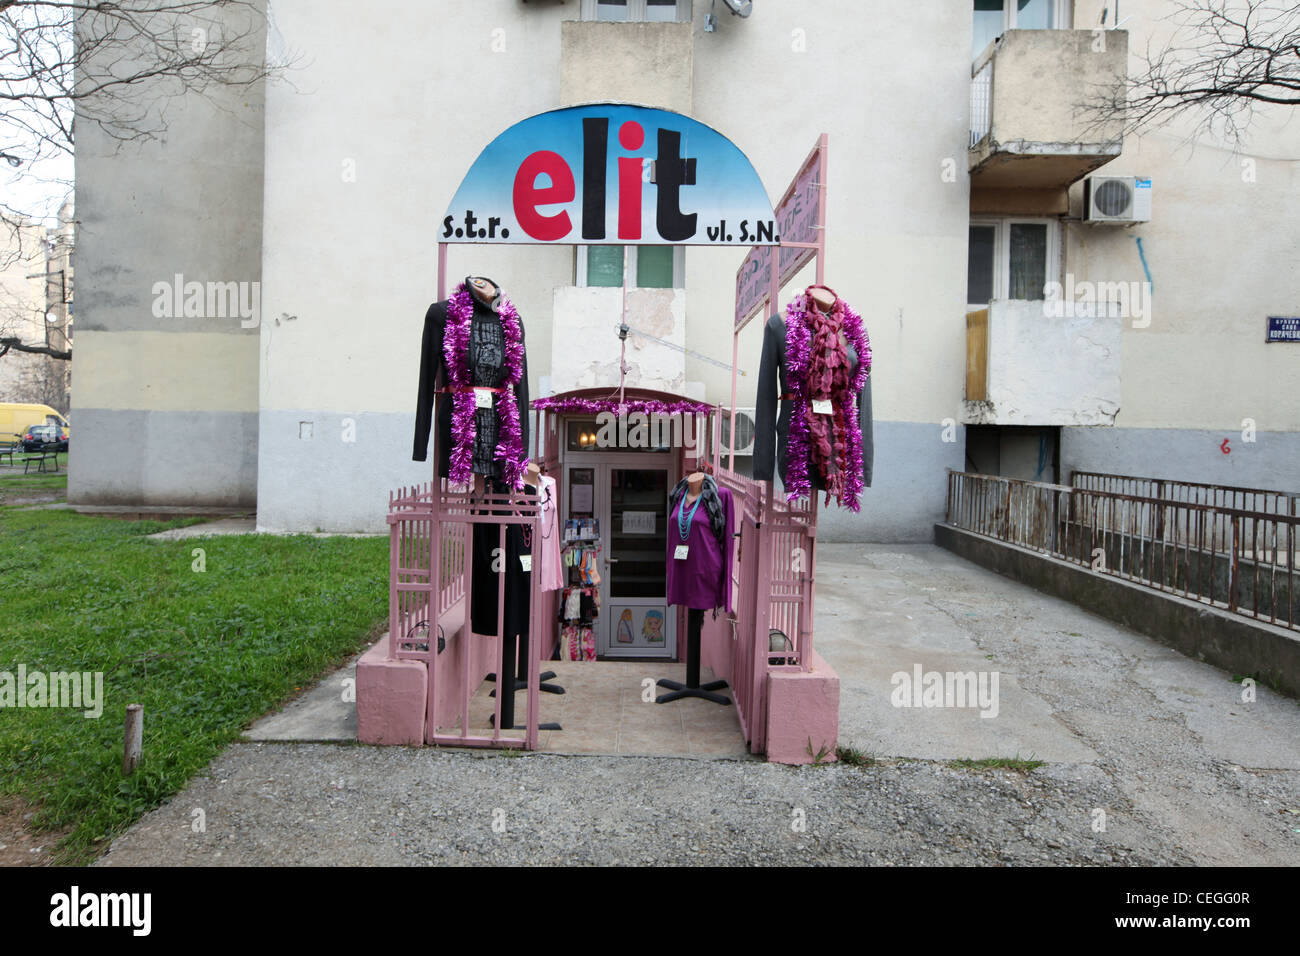 Exterior of a clothes shop in the neighbourhood, Podgorica, Montenegro - Stock Image